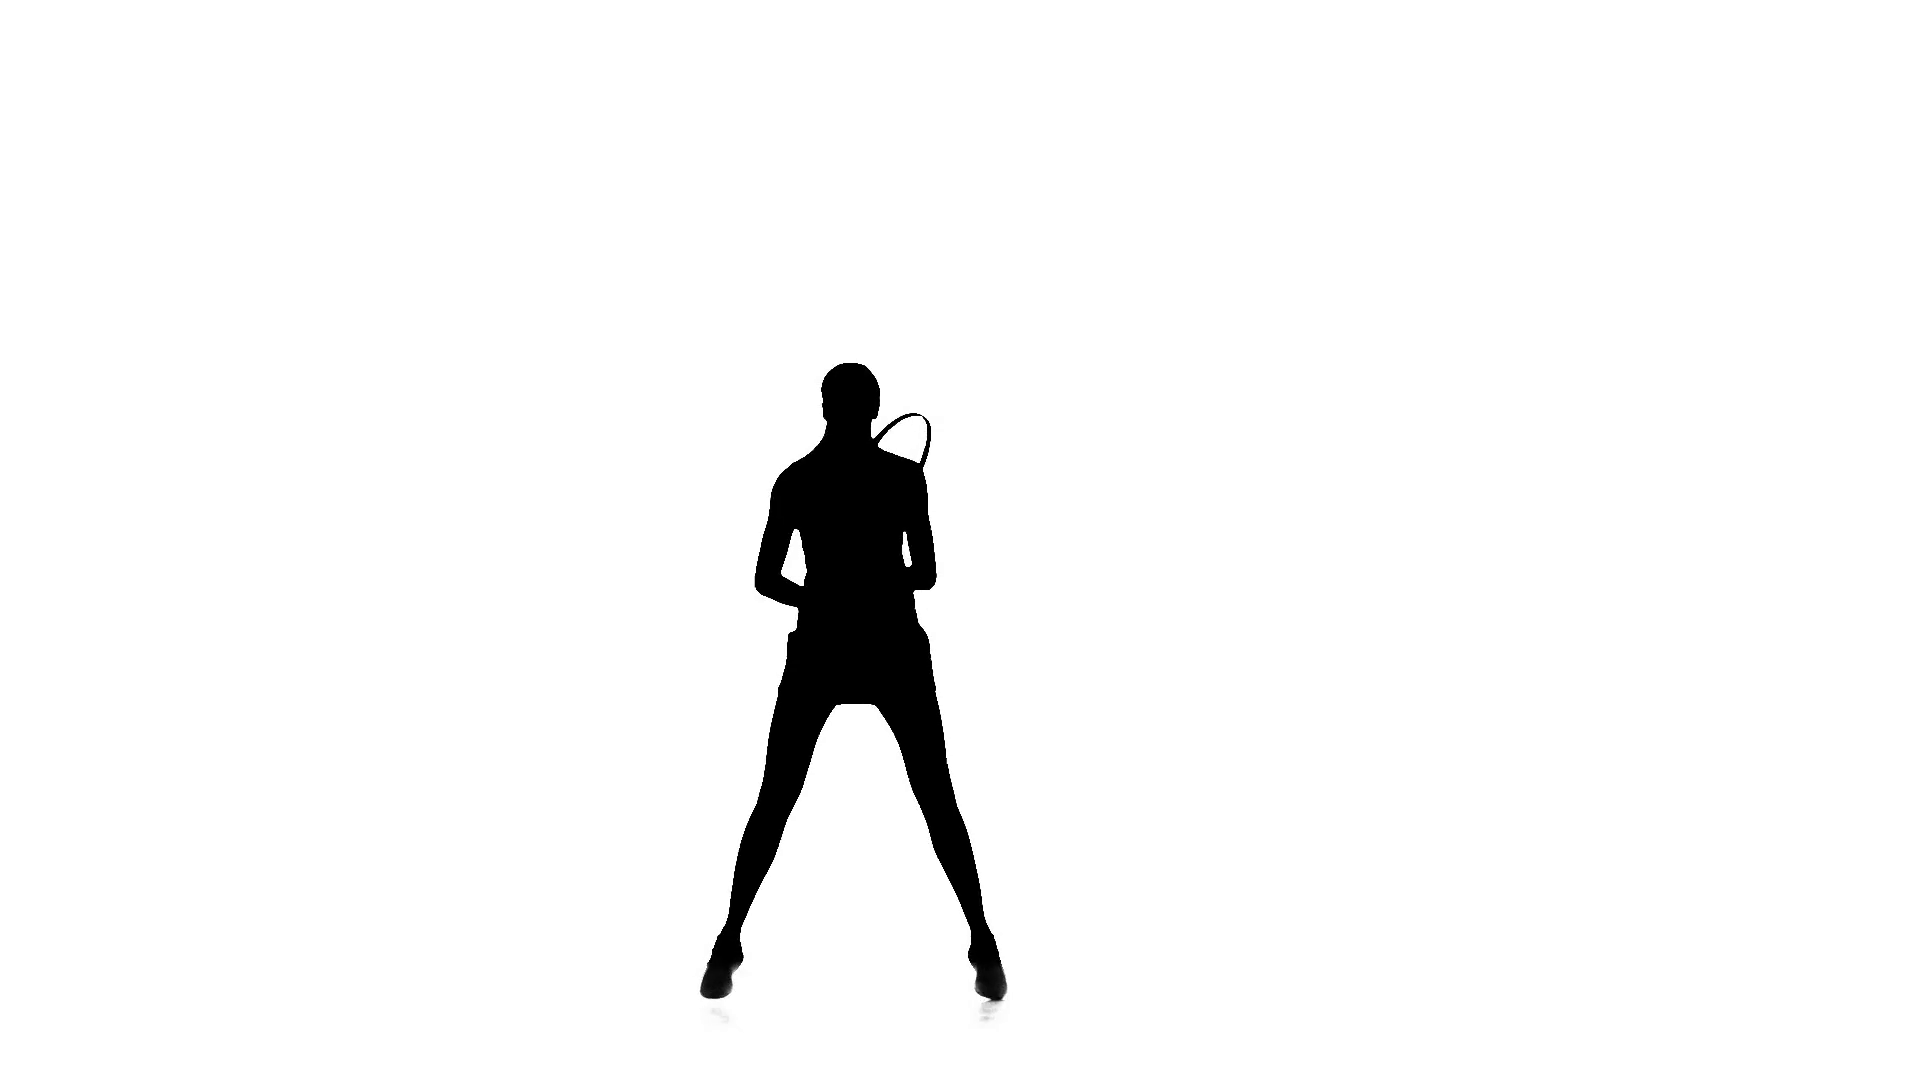 1920x1080 Girl With A Racket In The Hands Of Playing Tennis. Silhouette